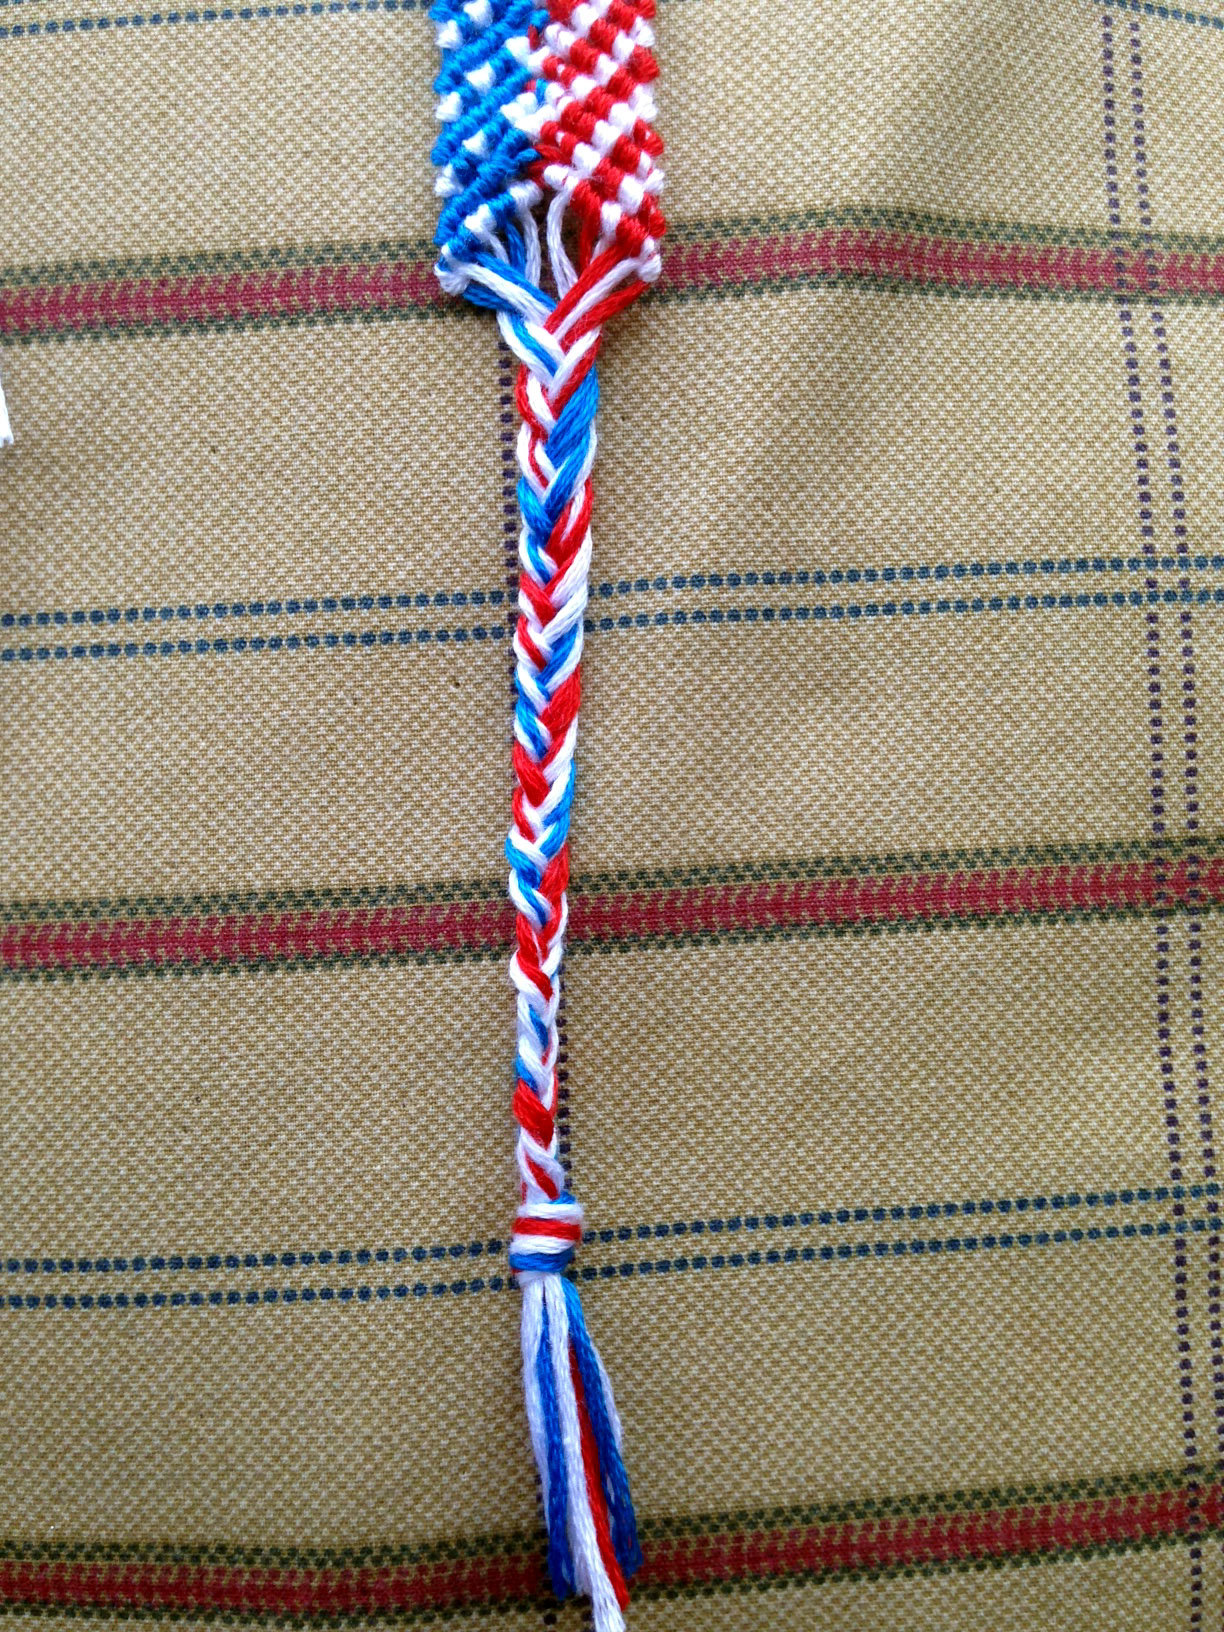 macrame 4th of july bracelet how to